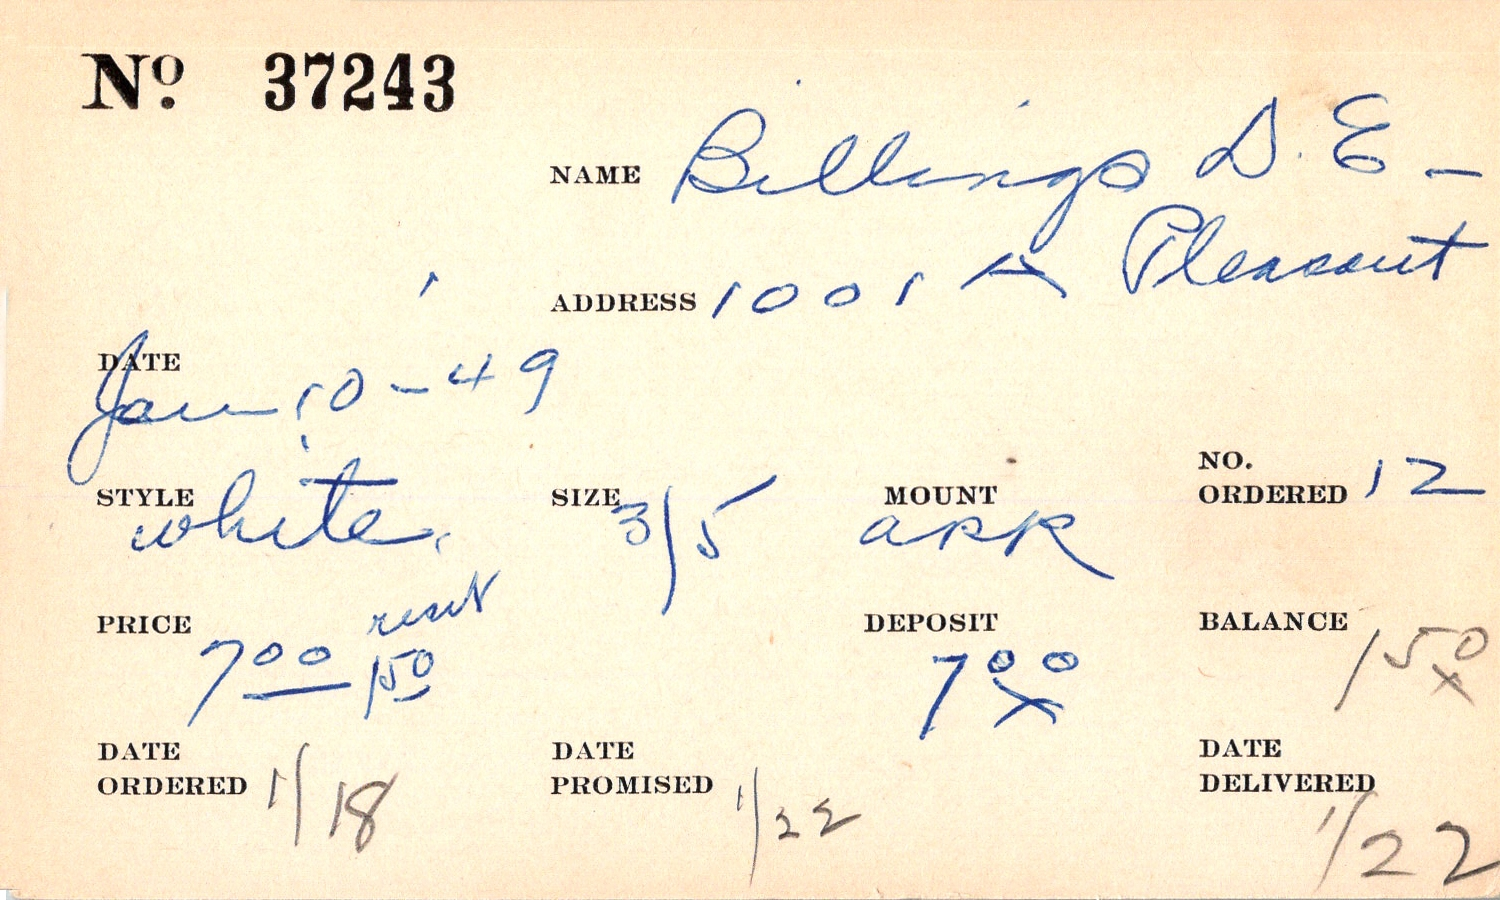 Index card for D. E. Billings